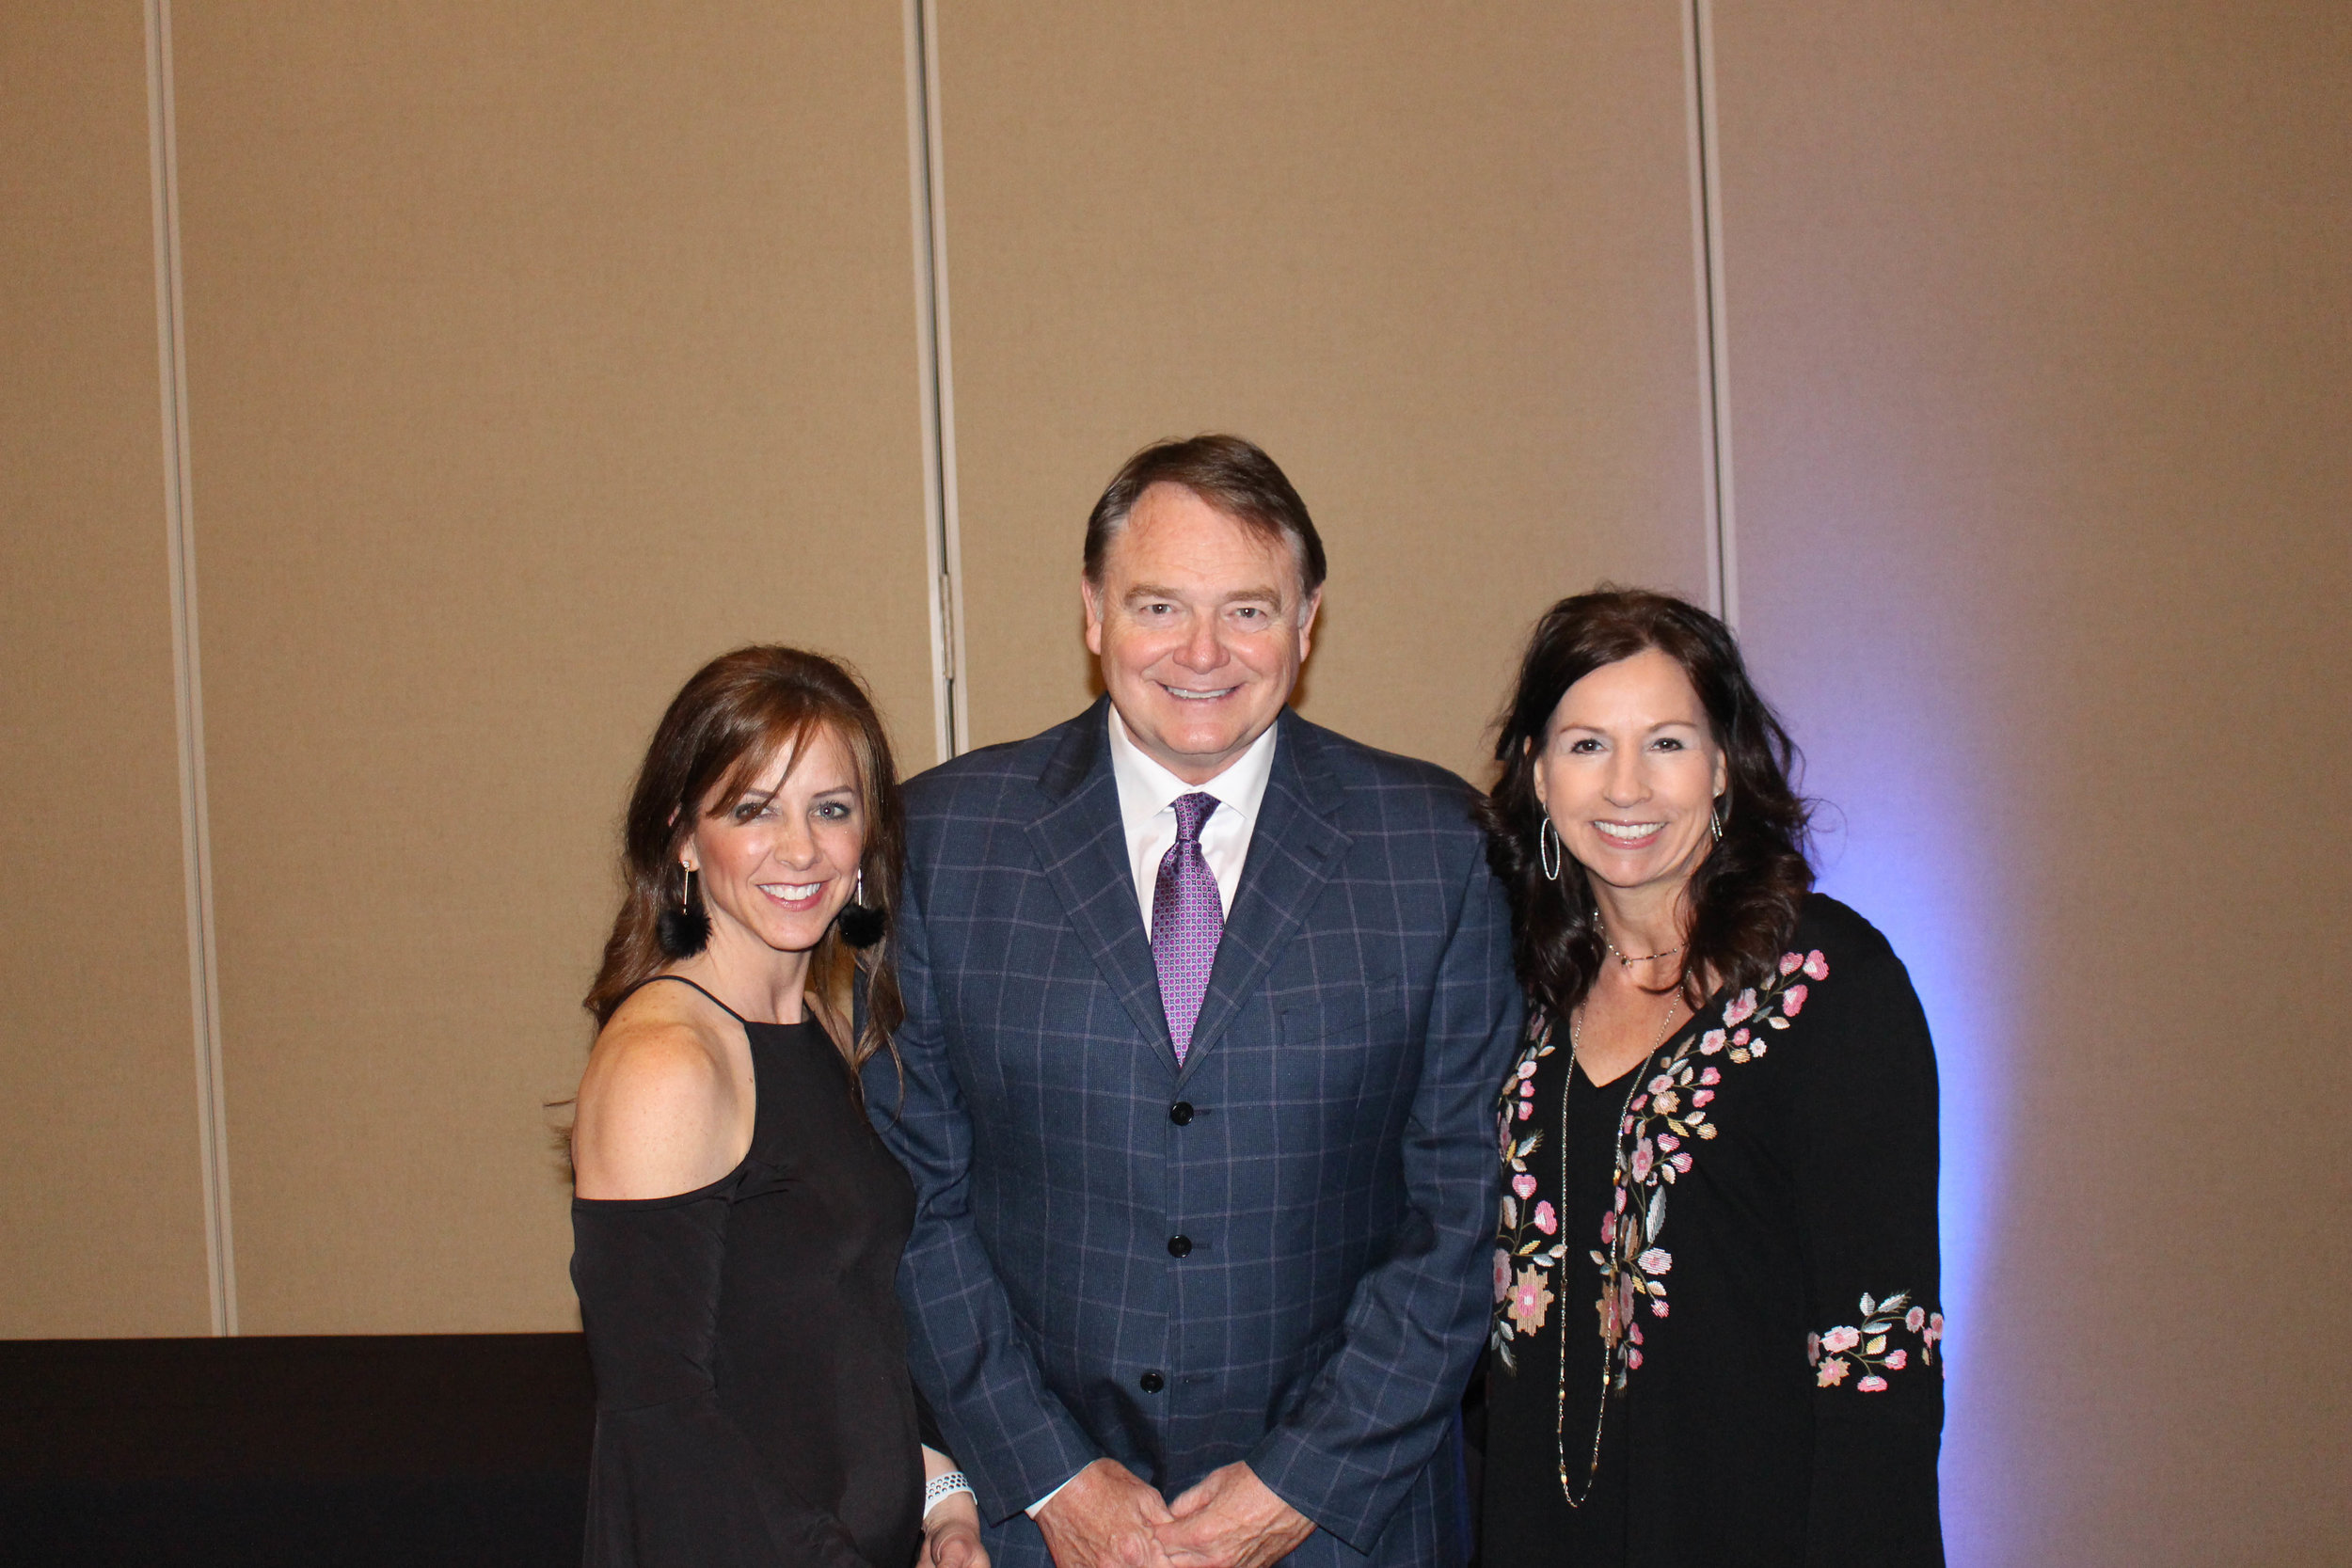 Ashley Mclean, Houston Nutt and Denise Wallace